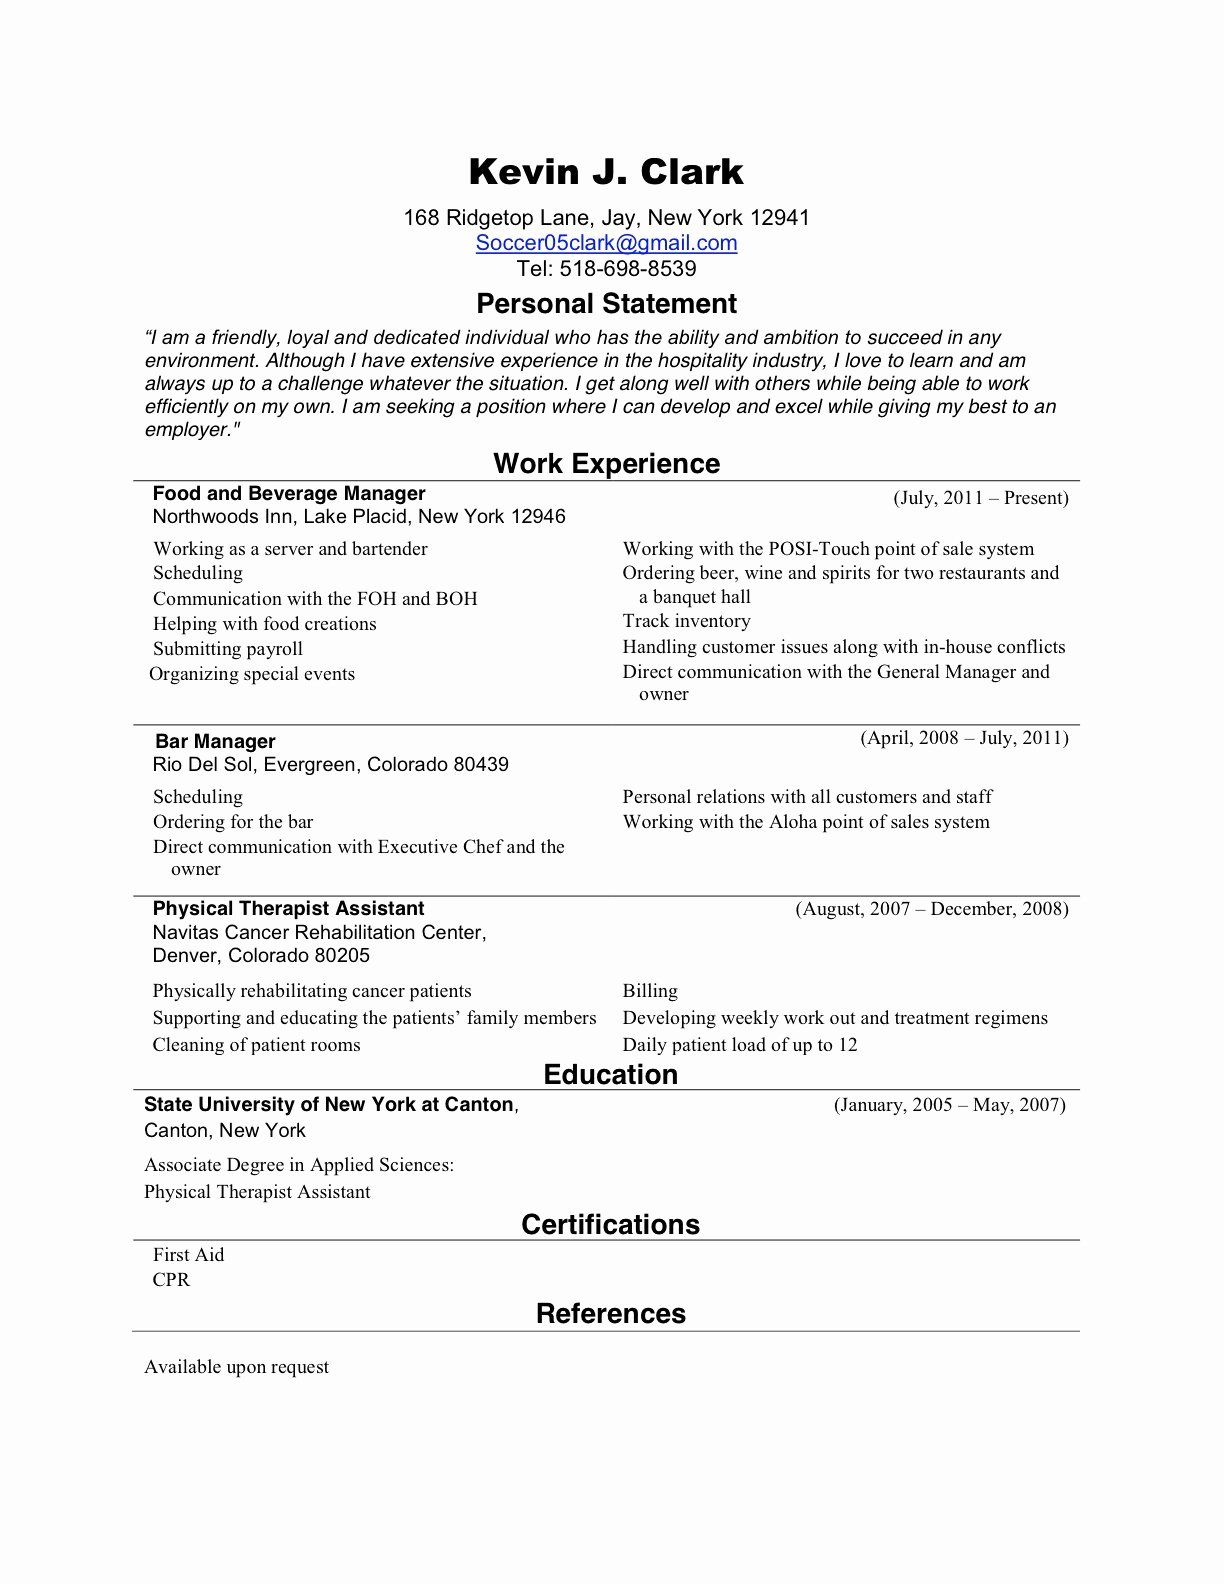 25 New Grad Nursing Resume Templates in 2020 Nursing